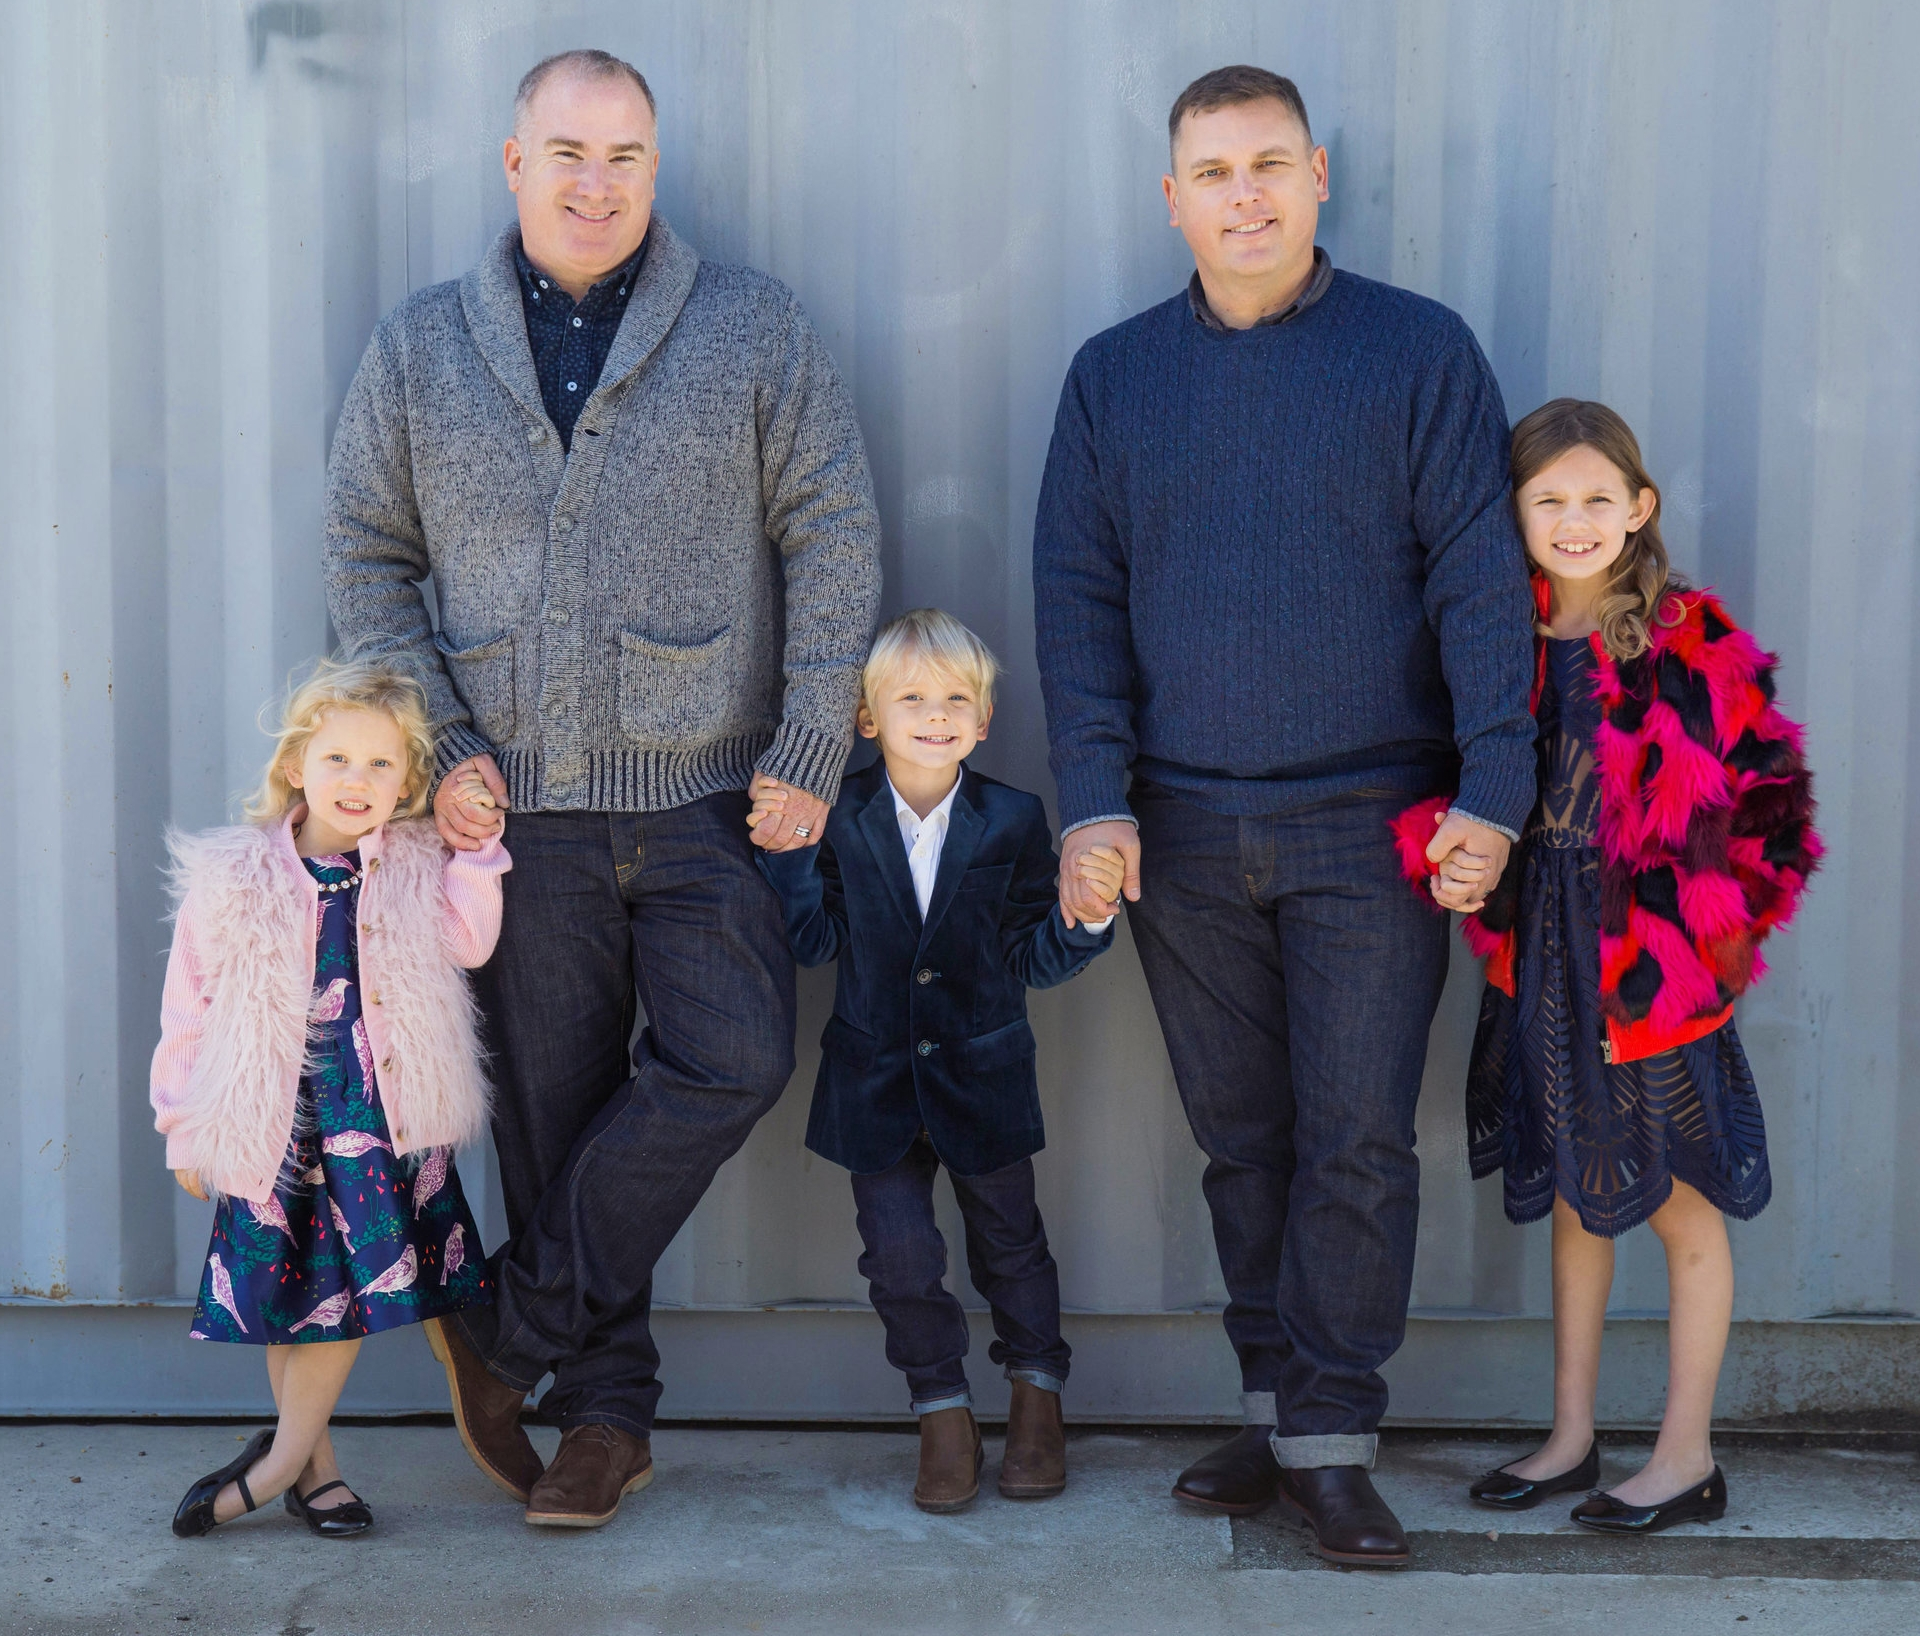 We Five. C, B, P, L & M - Two Dads +Three Great Kids...........our family grew & 5 is PERFECT!